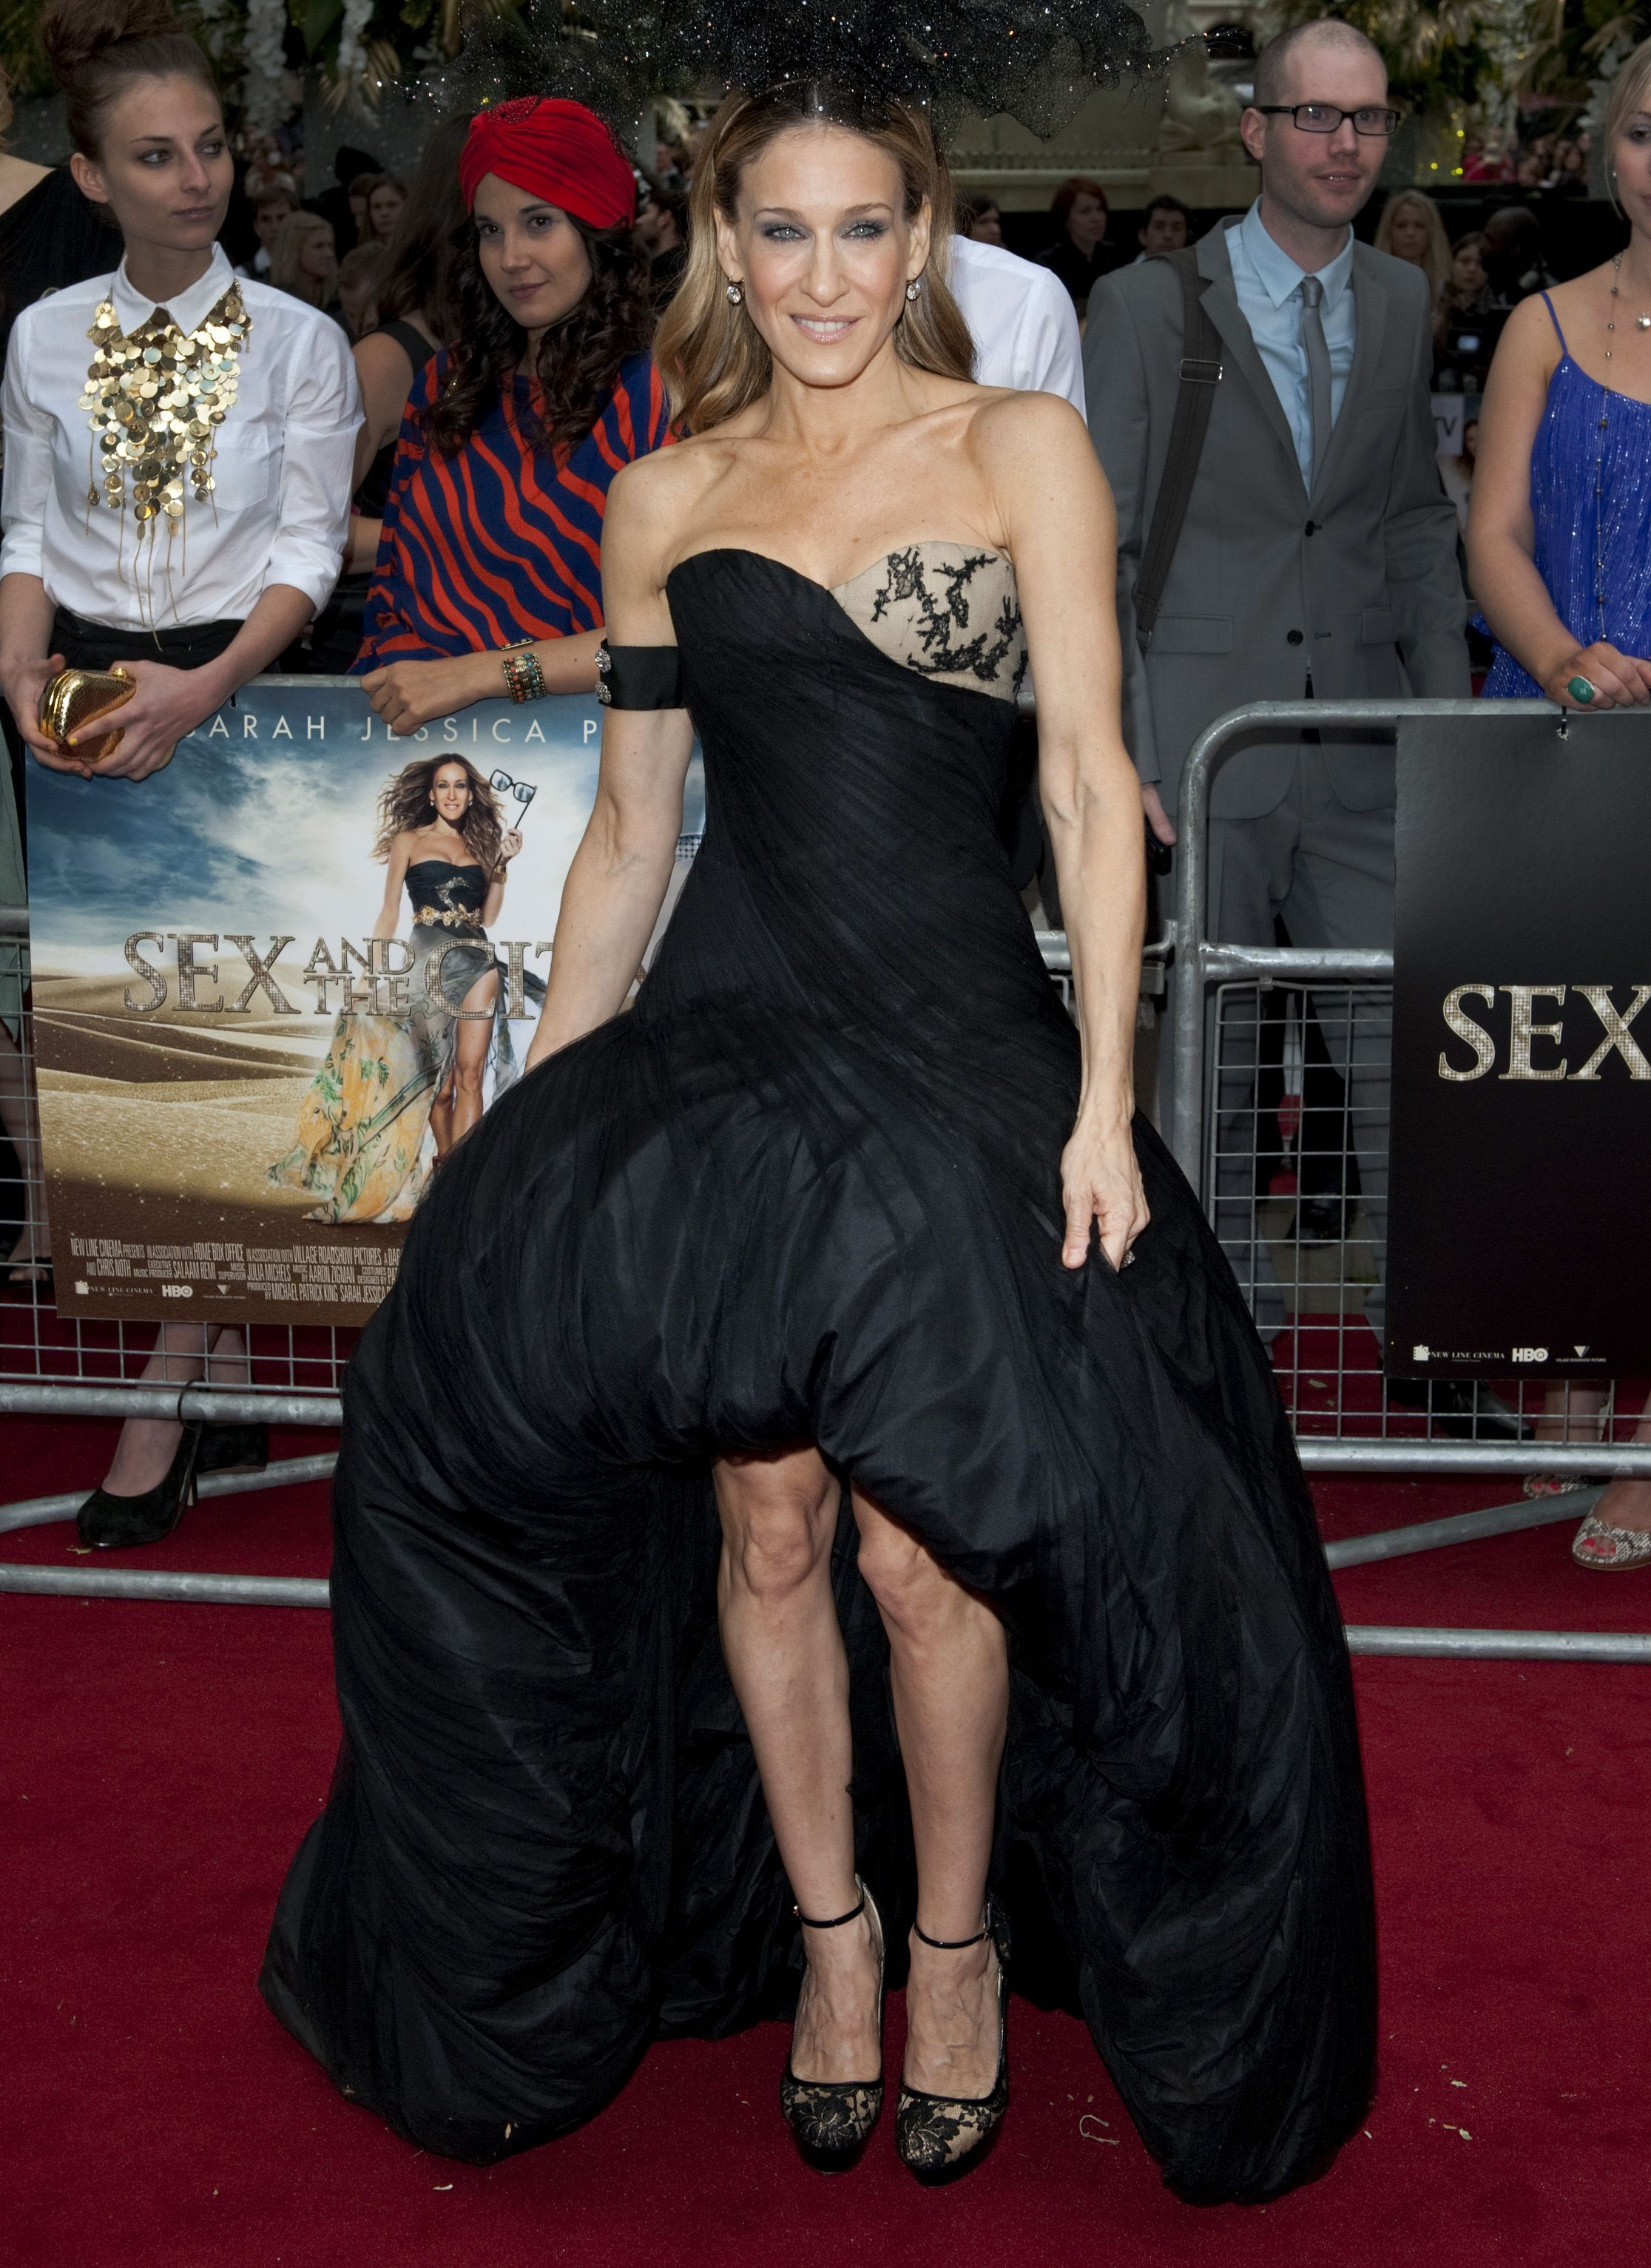 Village sex and the city premiere